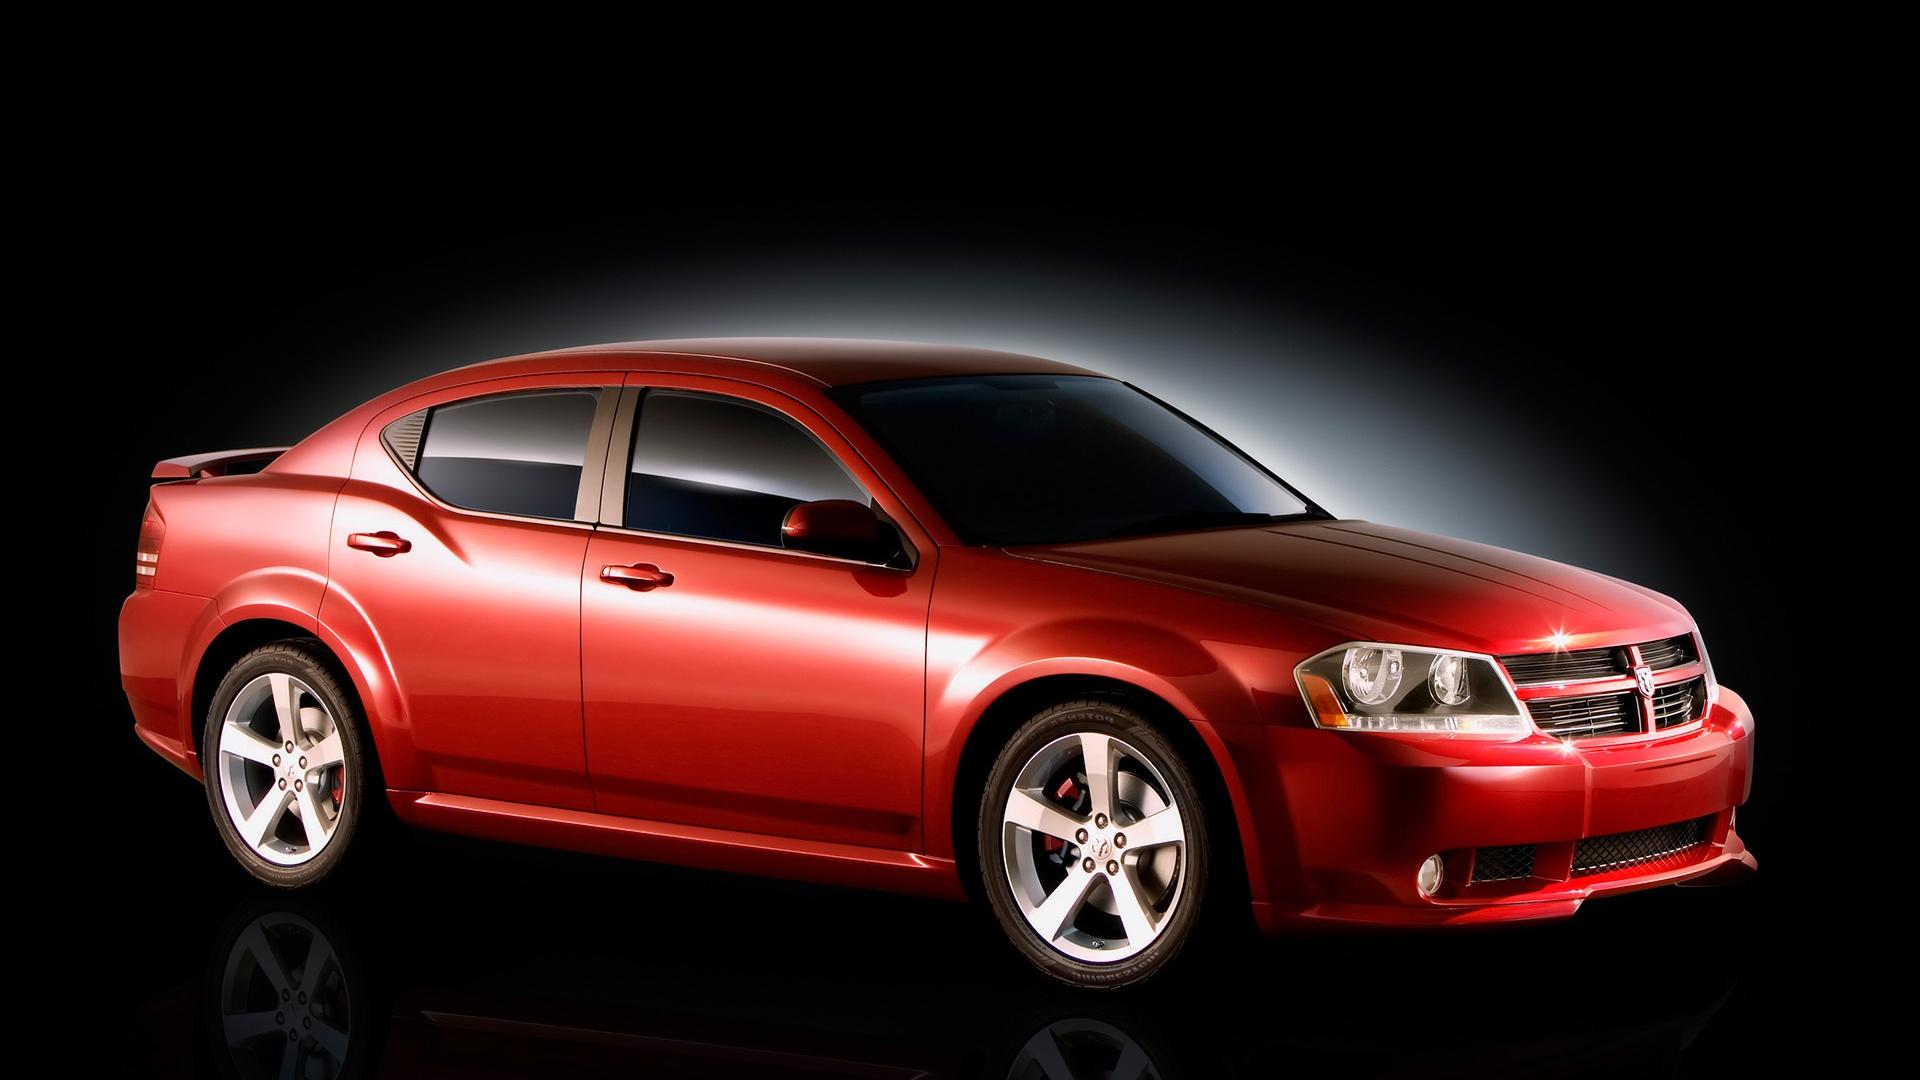 2006 Dodge Avenger Concept Front And Side 1920x1080